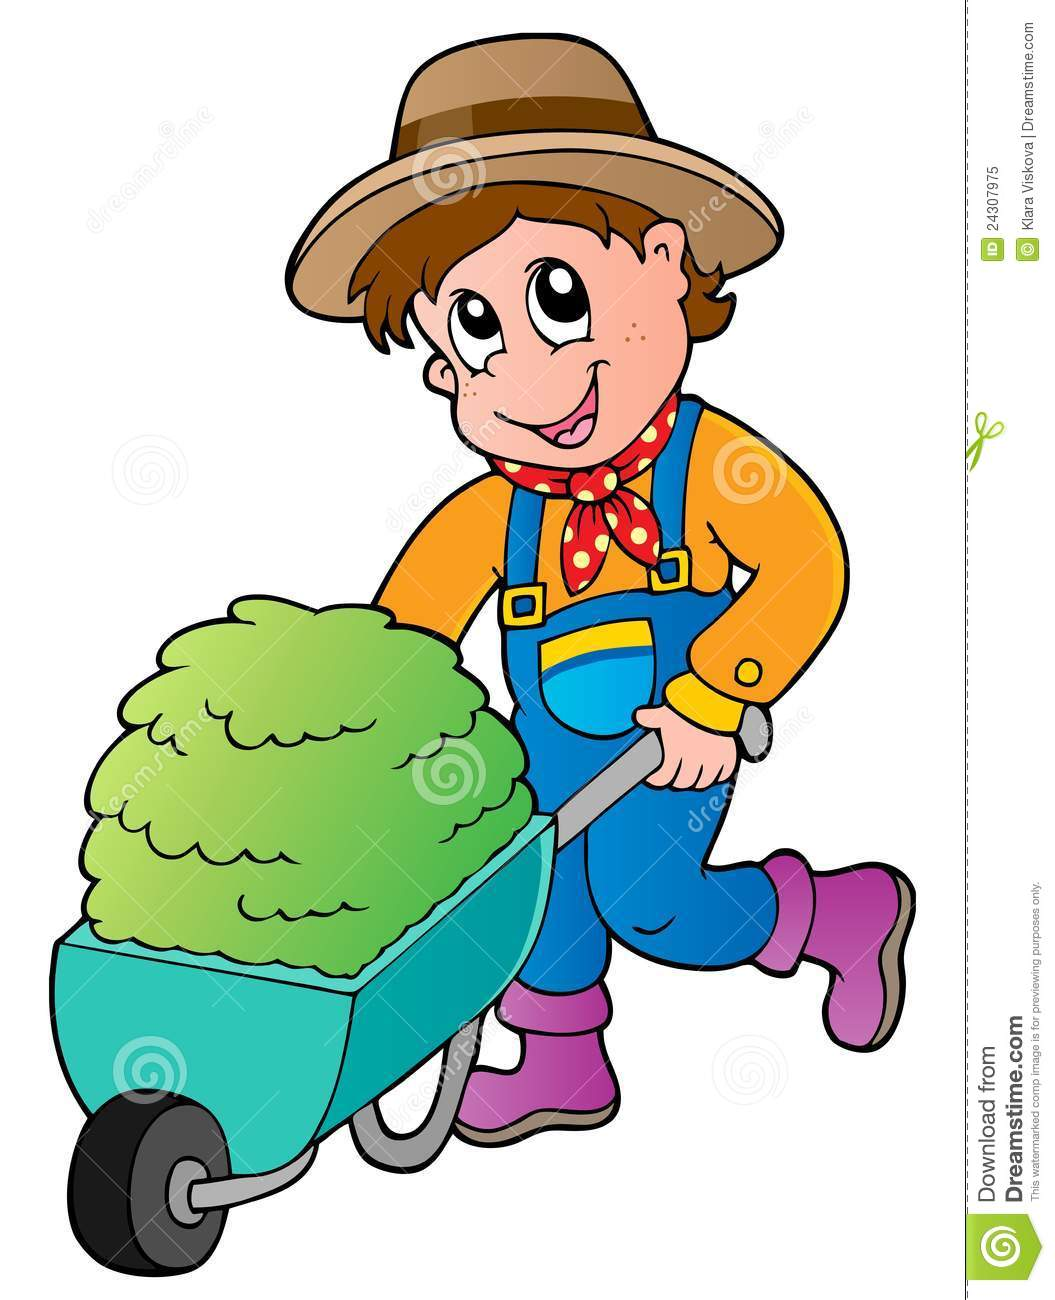 Cartoon Farmer With Small Hay Cart Royalty Free Stock Photo - Image ...